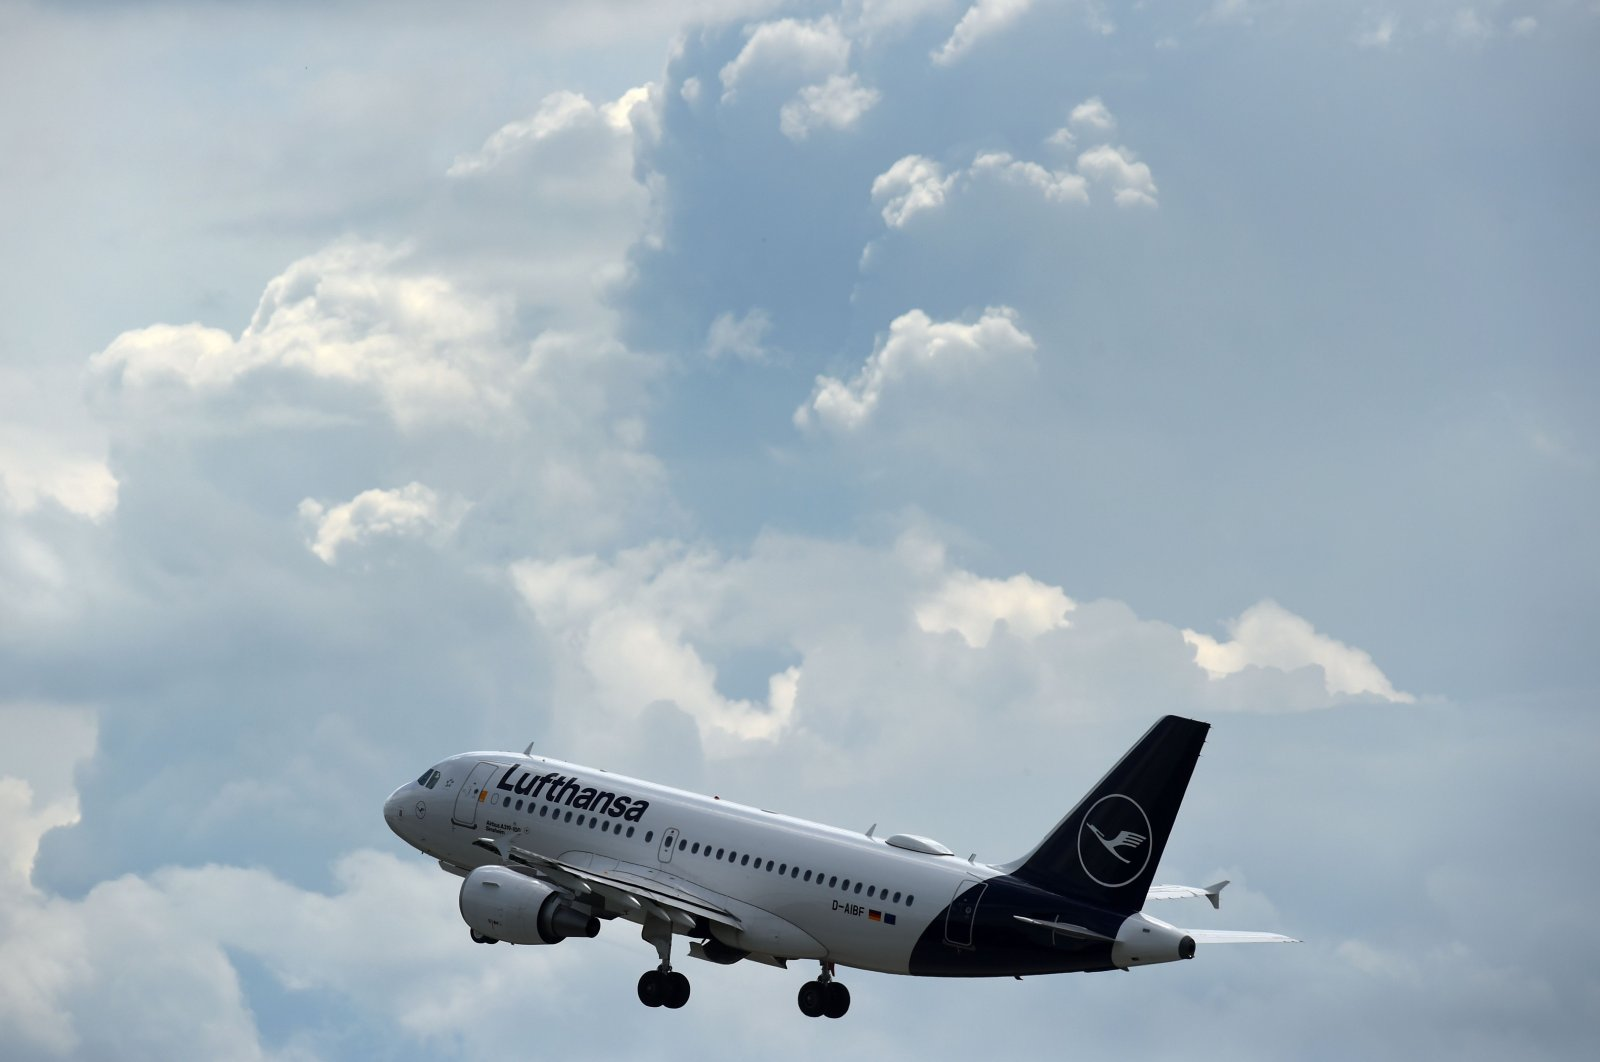 An aircraft of the German airline Lufthansa departs from Munich International Airport in Munich, Germany, June 25, 2020. (AFP Photo)